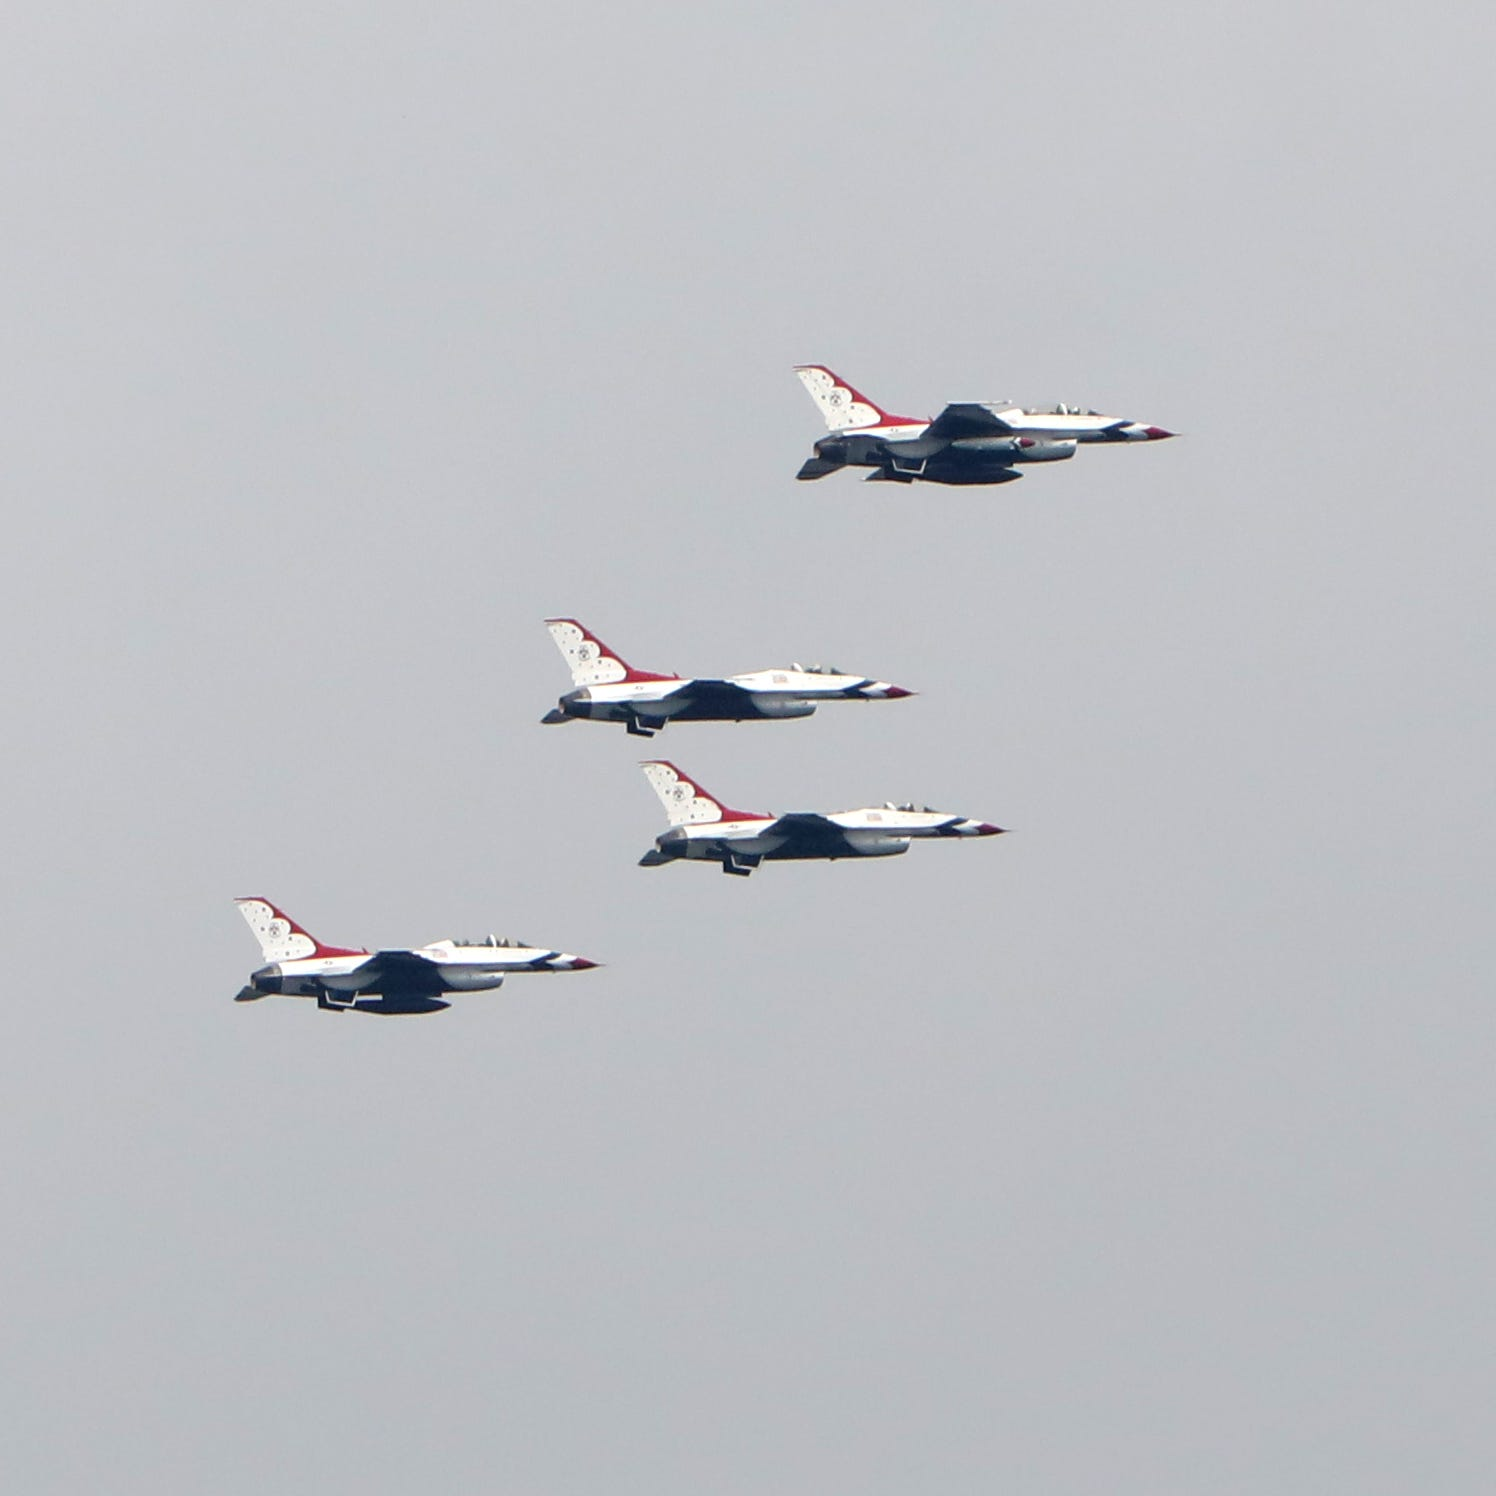 F-16 Fighting Falcons of the Air Force's Thunderbirds fly north over the Hudson River near Tarrytown Sept. 17, 2018. Eight F-16 Fighting Falcons flew south over the Hudson River from Stewart Air National Guard Base in Newburgh, circled the Statue of Liberty and returned to Stewart.